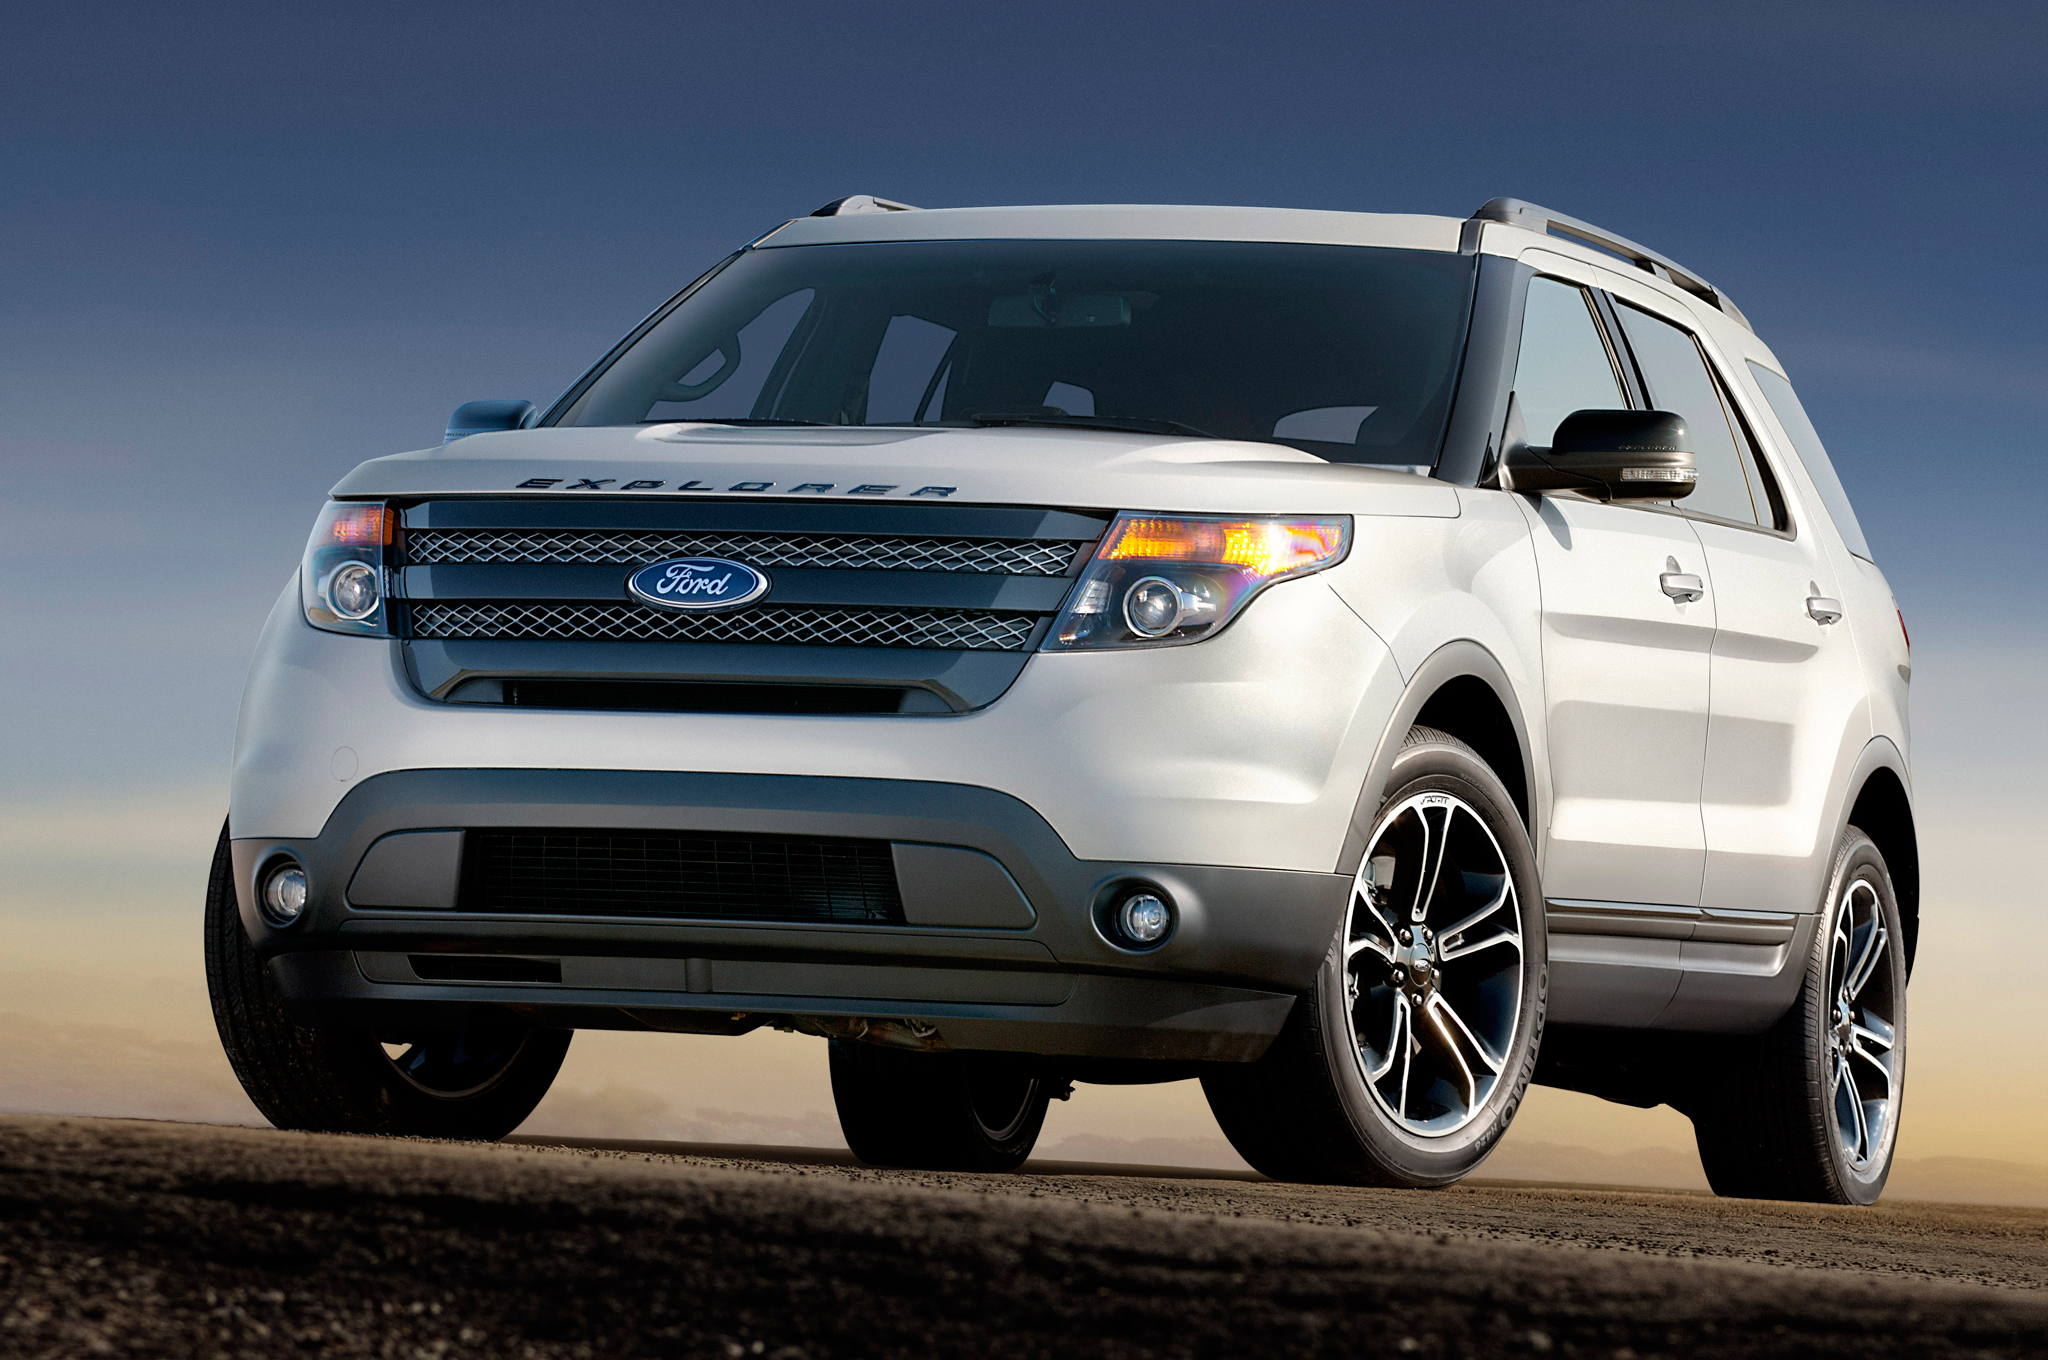 Article 20 Best Selling SUVs of the Year